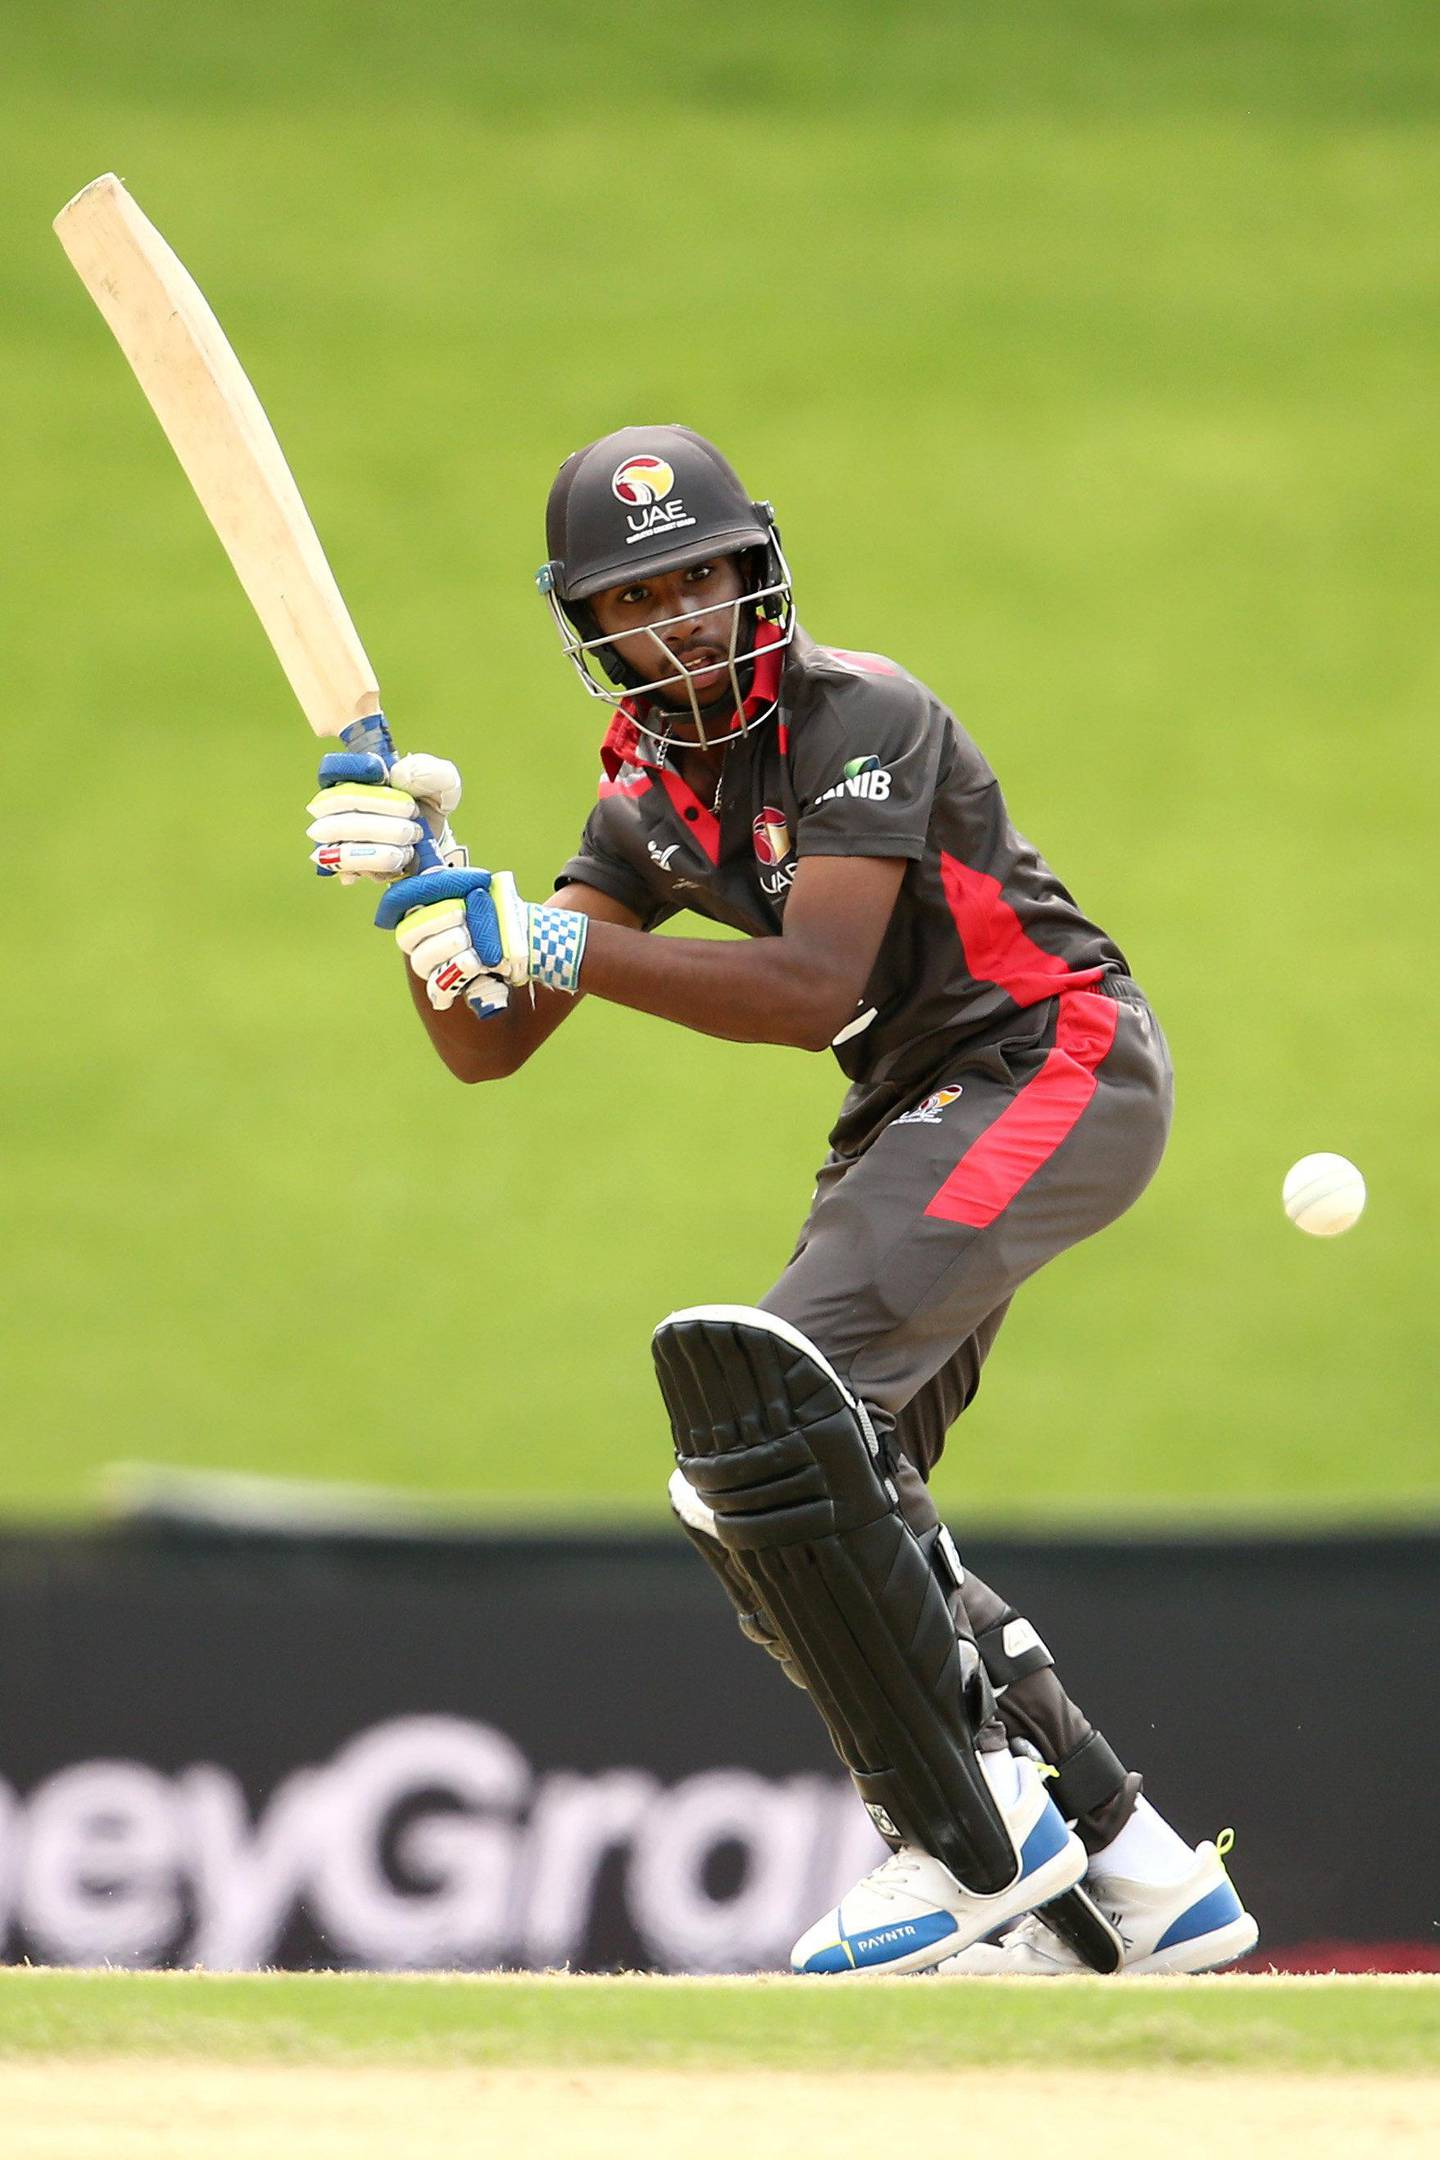 BLOEMFONTEIN, SOUTH AFRICA - JANUARY 18: Vriitya Aravind of UAE bats during the ICC U19 Cricket World Cup Group D match between UAE and Canada at Mangaung Oval on January 18, 2020 in Bloemfontein, South Africa. (Photo by Jan Kruger-ICC/ICC via Getty Images)